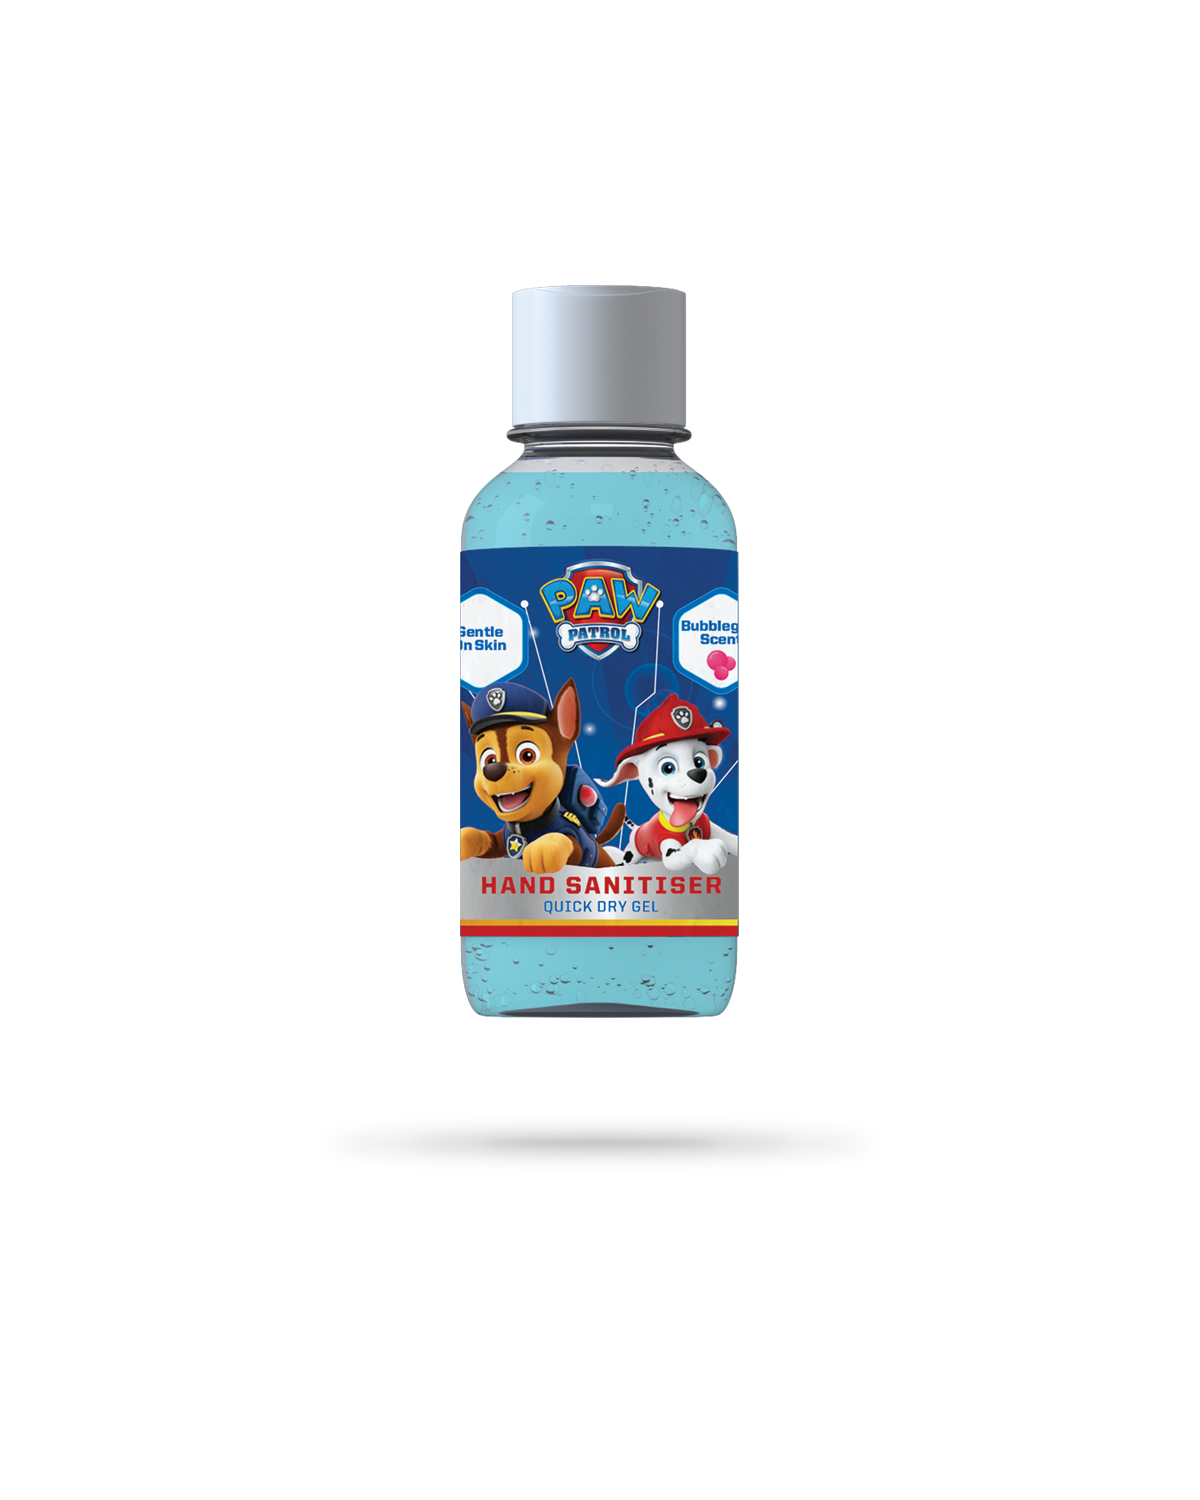 50ml PAW Patrol bubblegum scented hand sanitiser gel from Vital Life